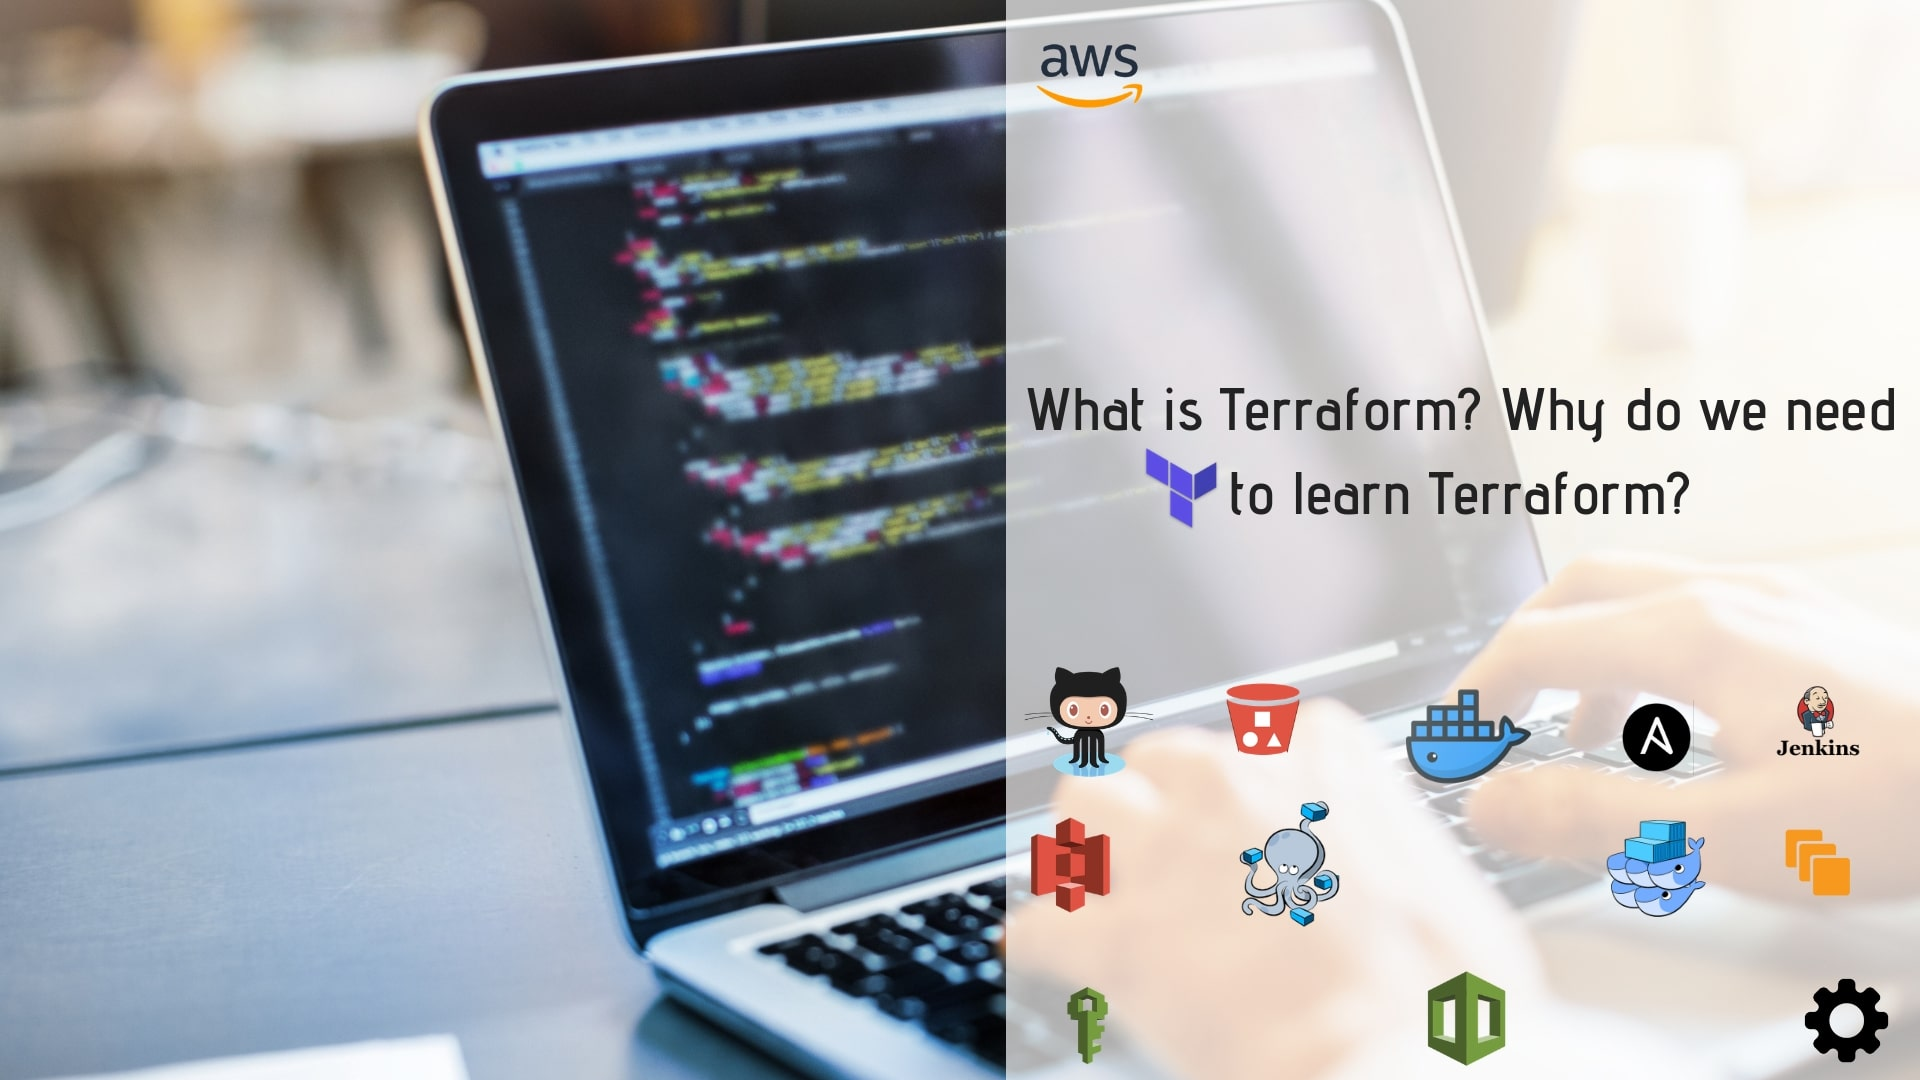 What is Terraform? Why do we need to learn Terraform?